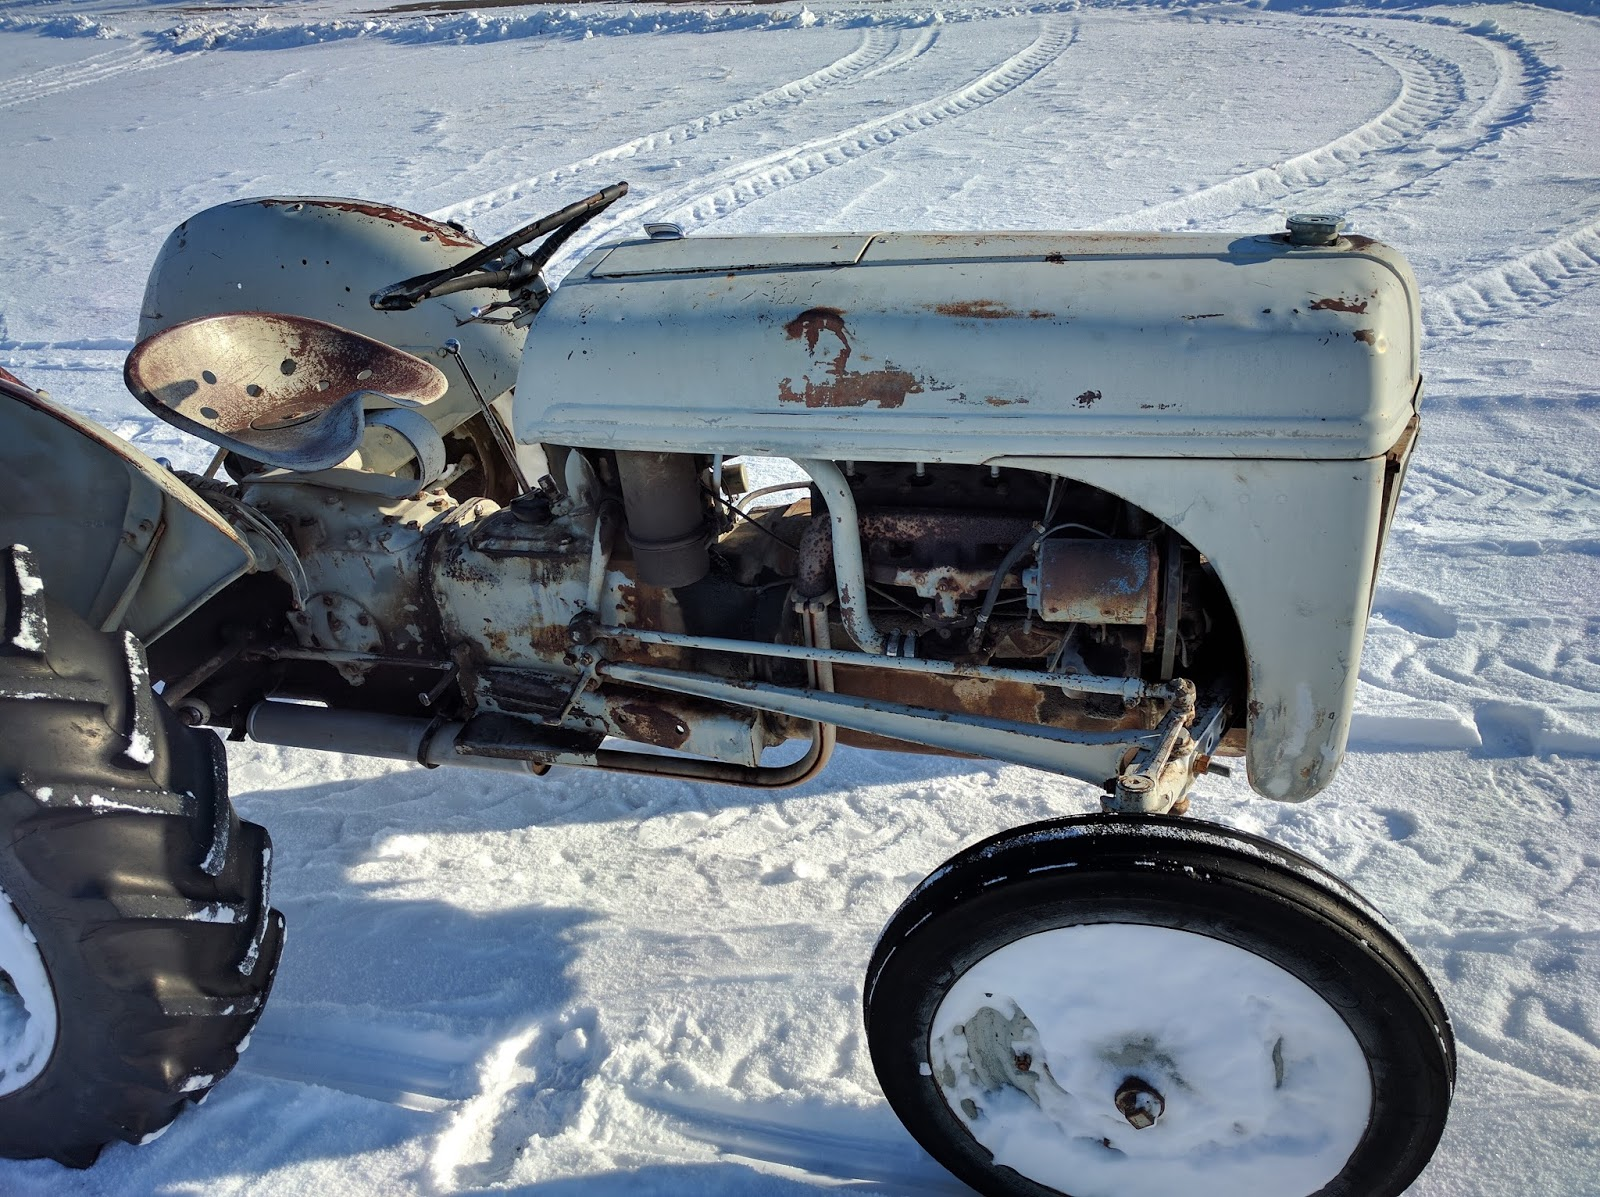 1939 Ford 9n Project Tractor Ars Technica Openforum Wiring Diagram For A 12 Volt System Image